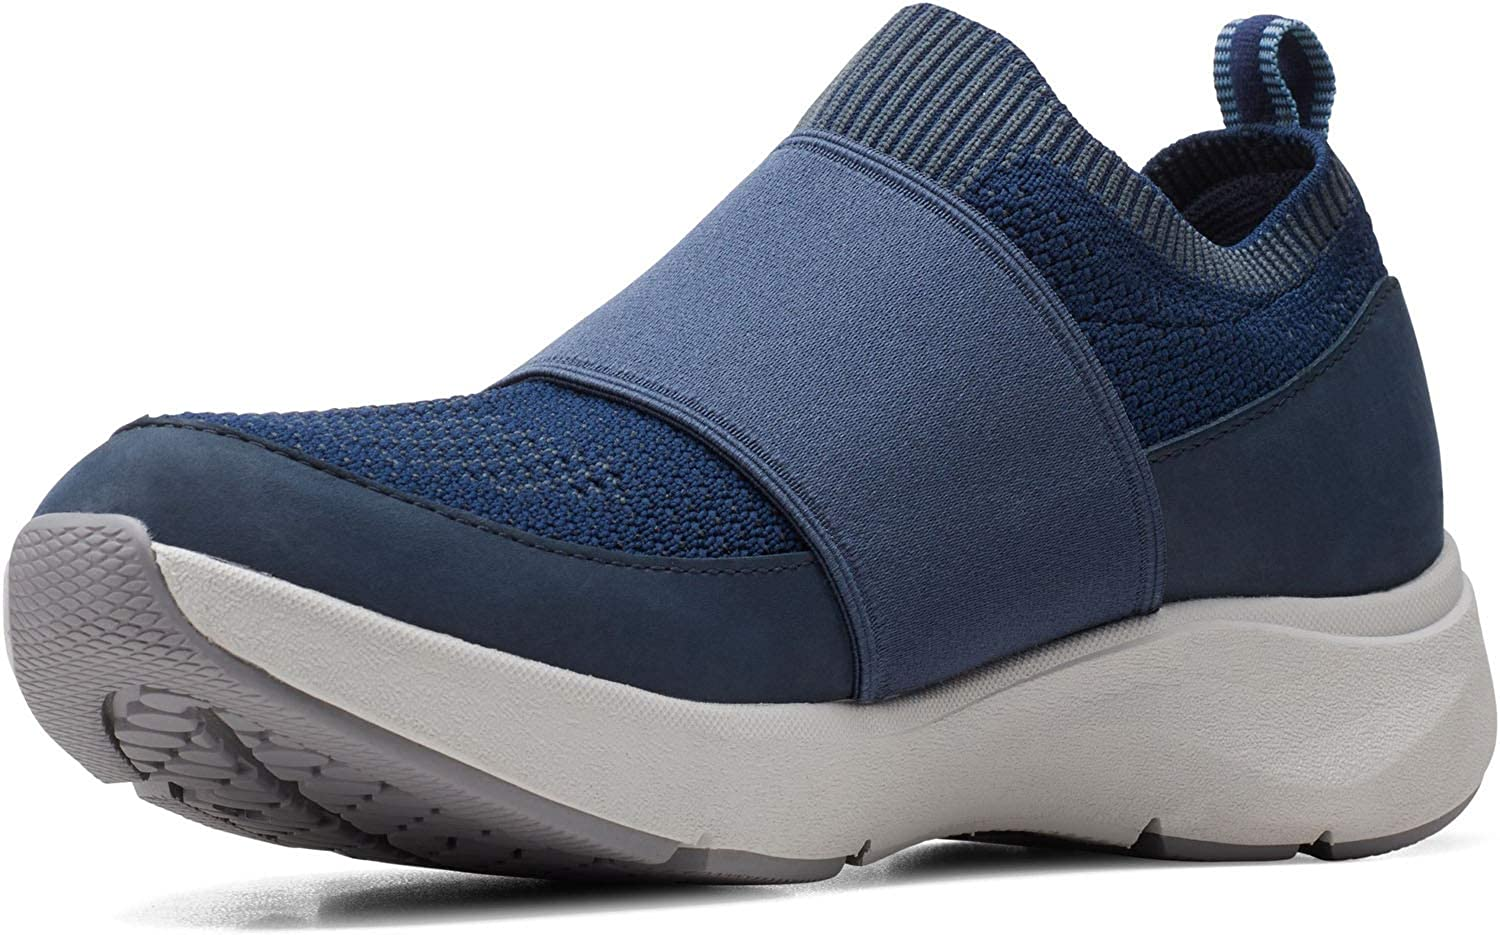 Clarks Max 74% OFF Department store Wave 2.0 Step